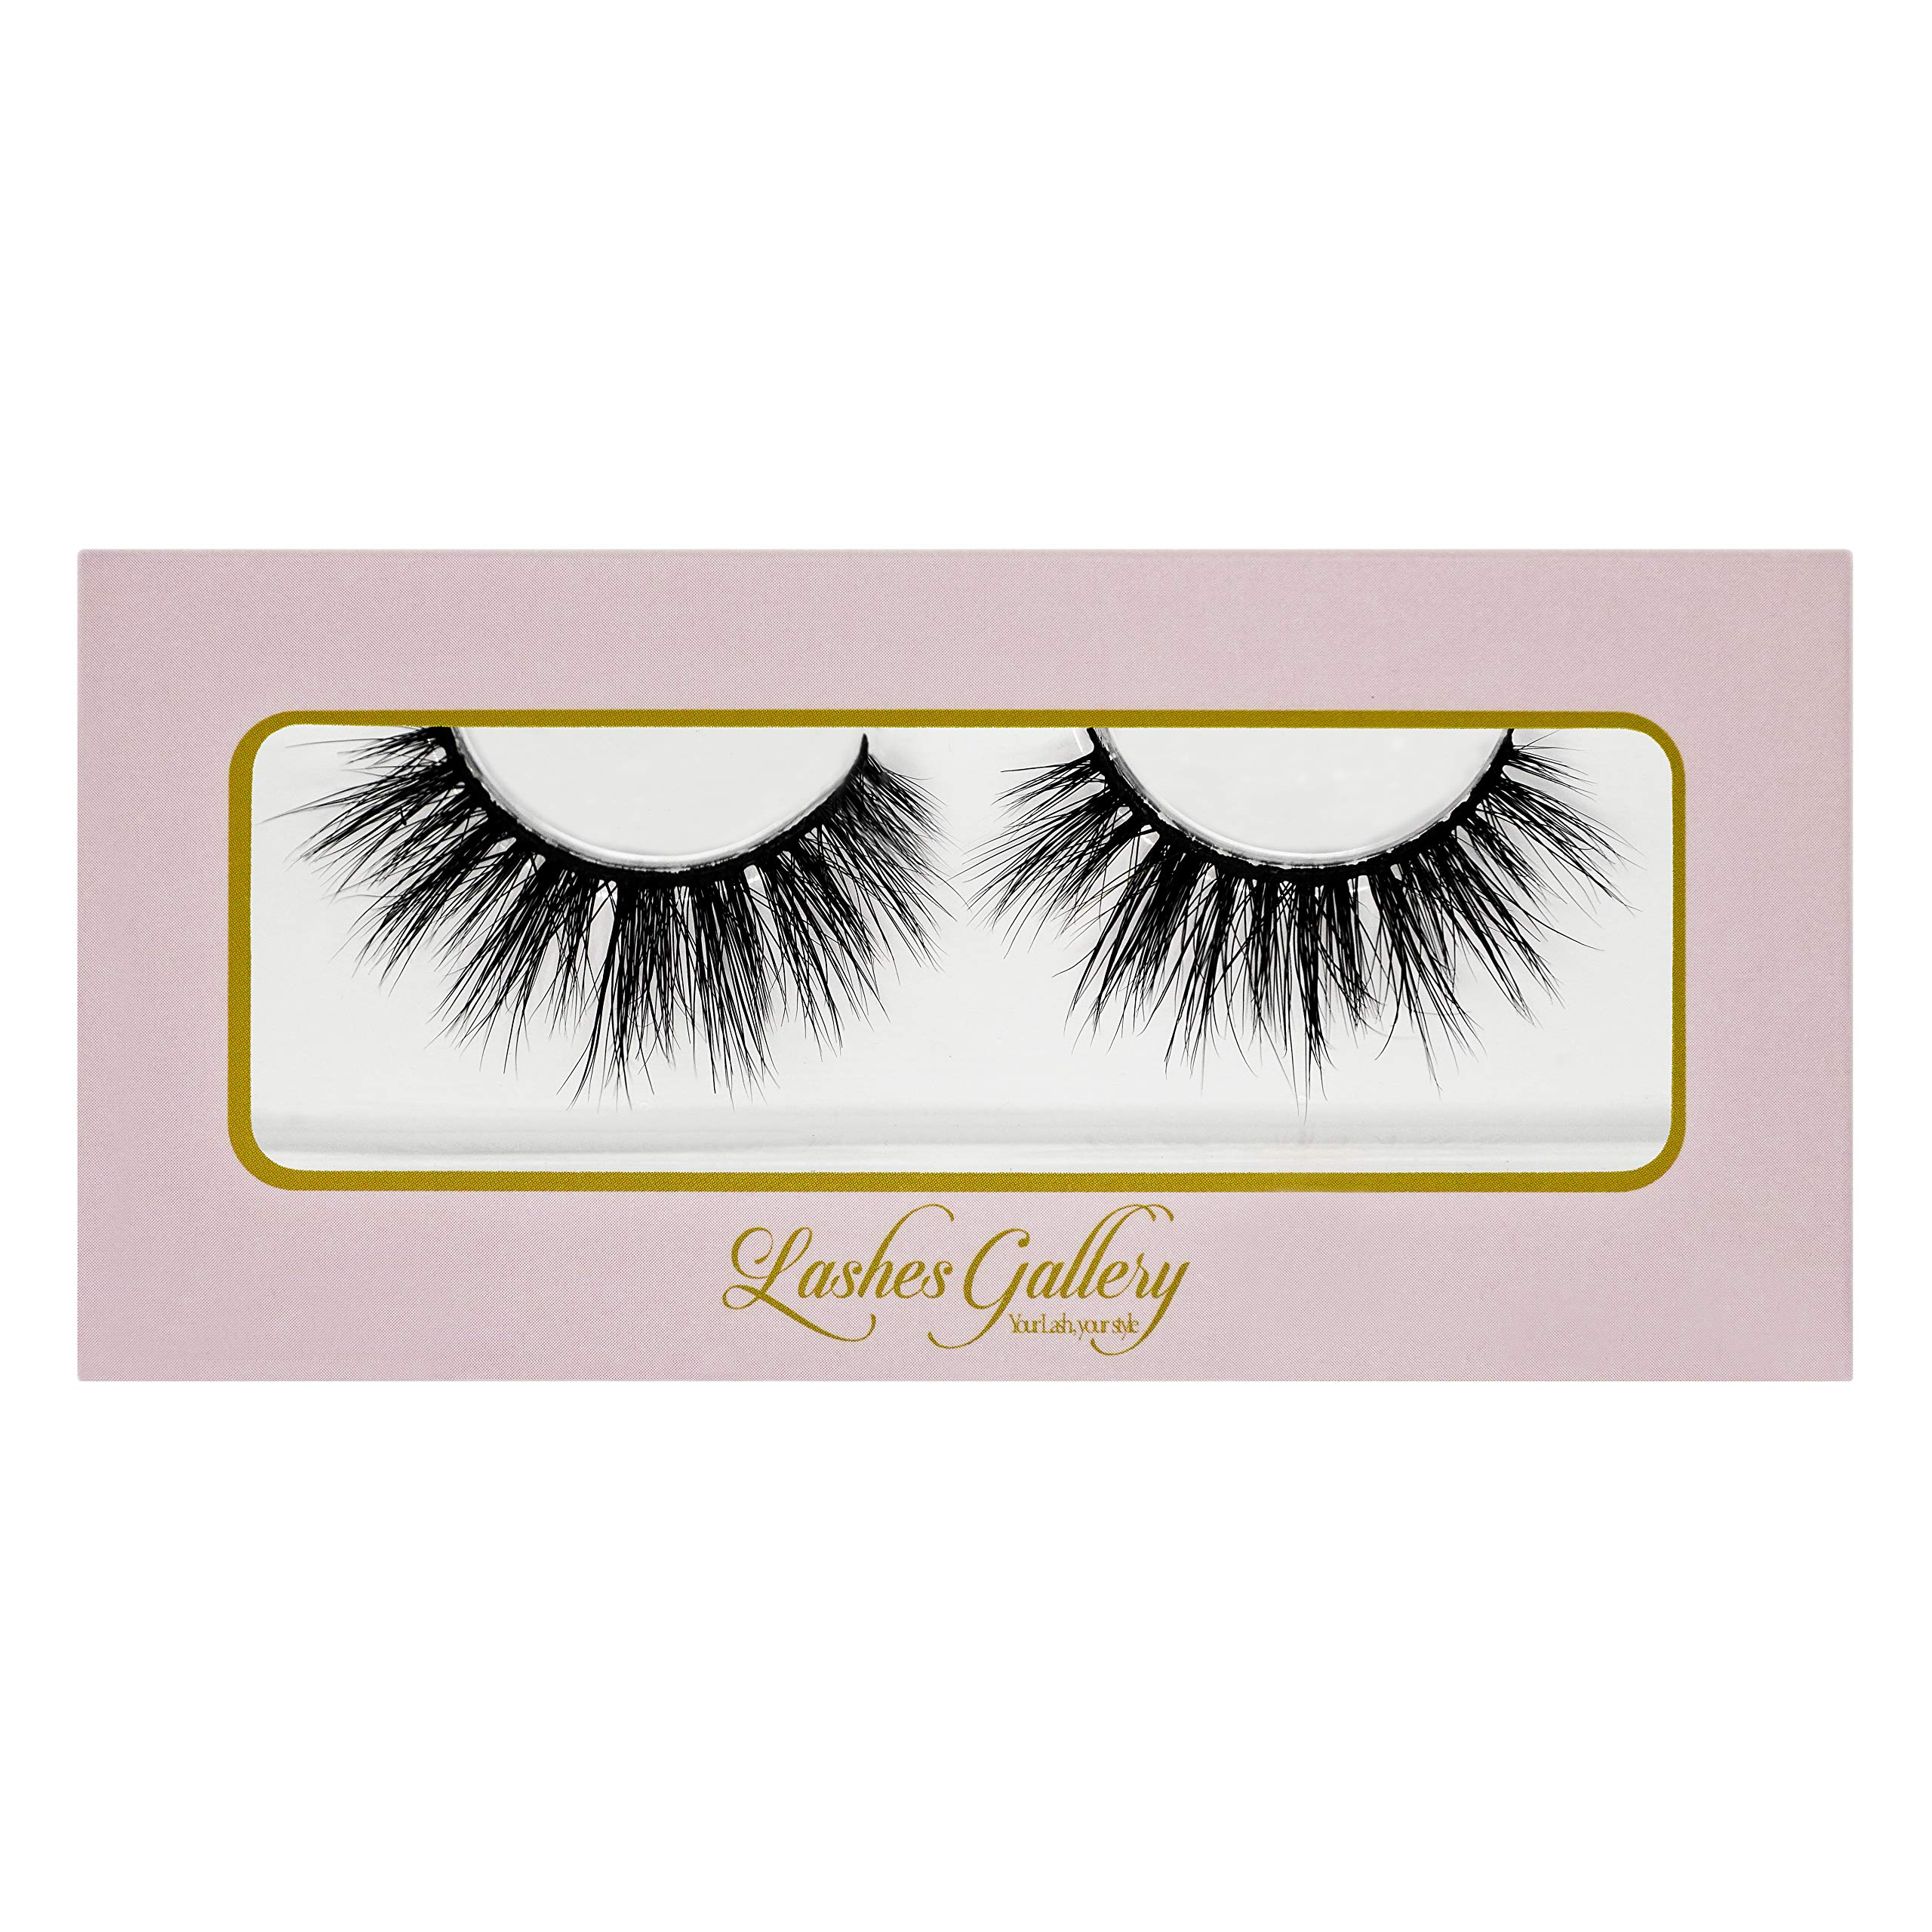 77e1a784e10 Sultry 3D Premium Mink Fur False Eyelashes. Cruelty-Free with Natural Soft  Curl.